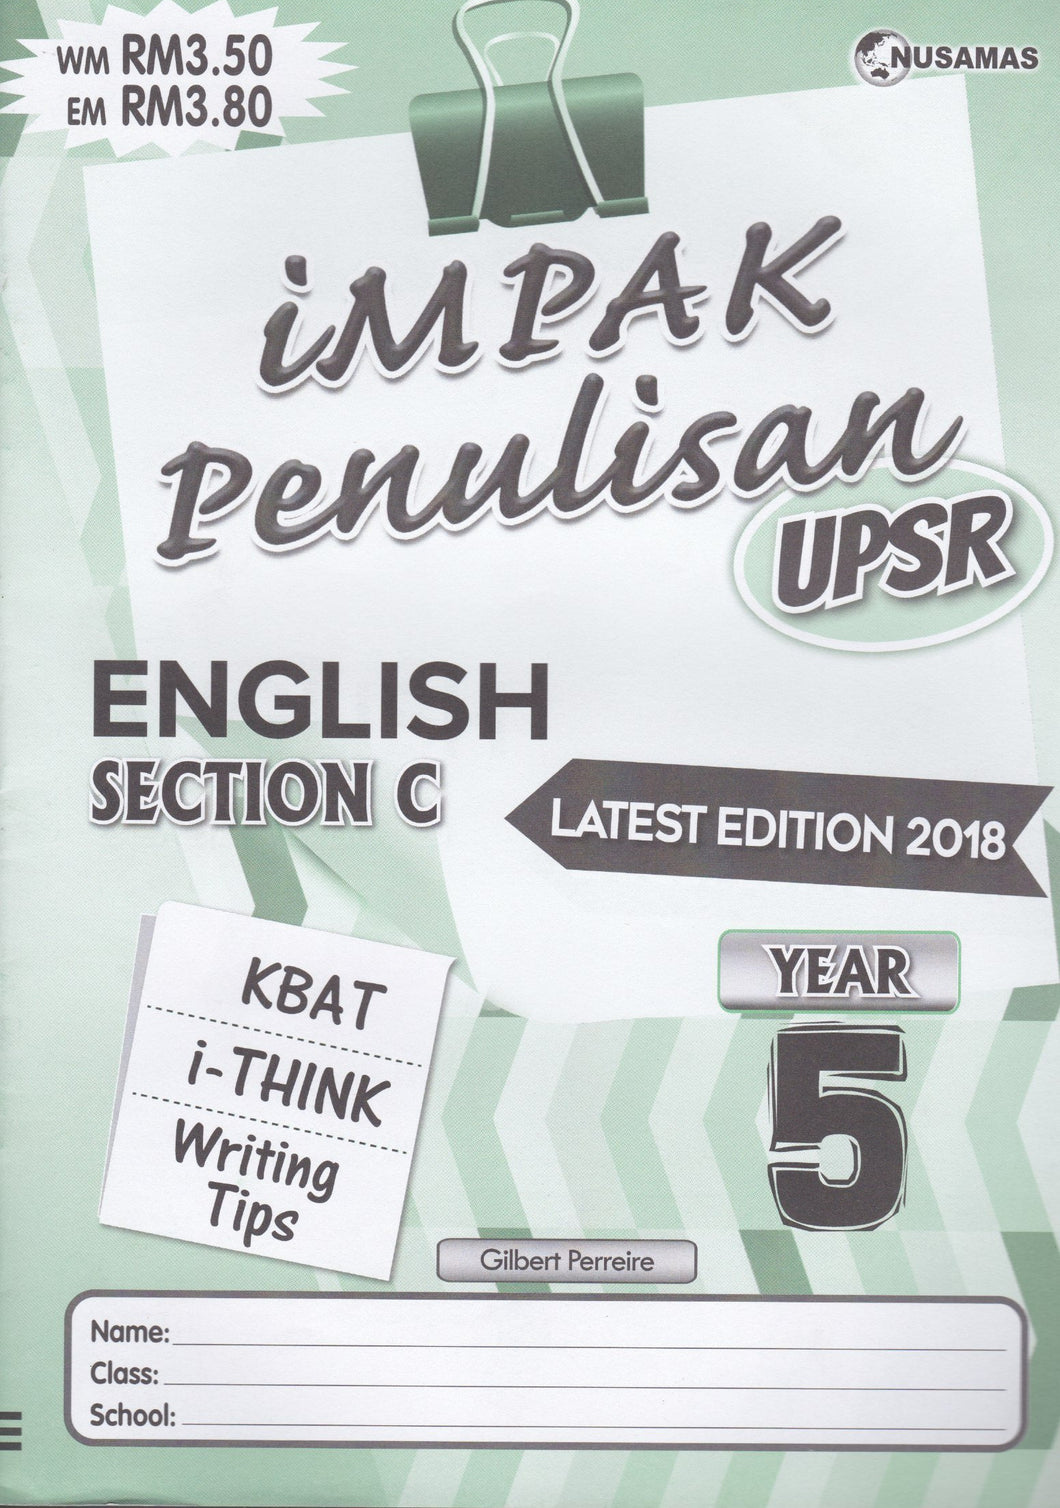 Nusamas-Impak Penulisan: English Section C Year 5-9789674870140-BukuDBP.com